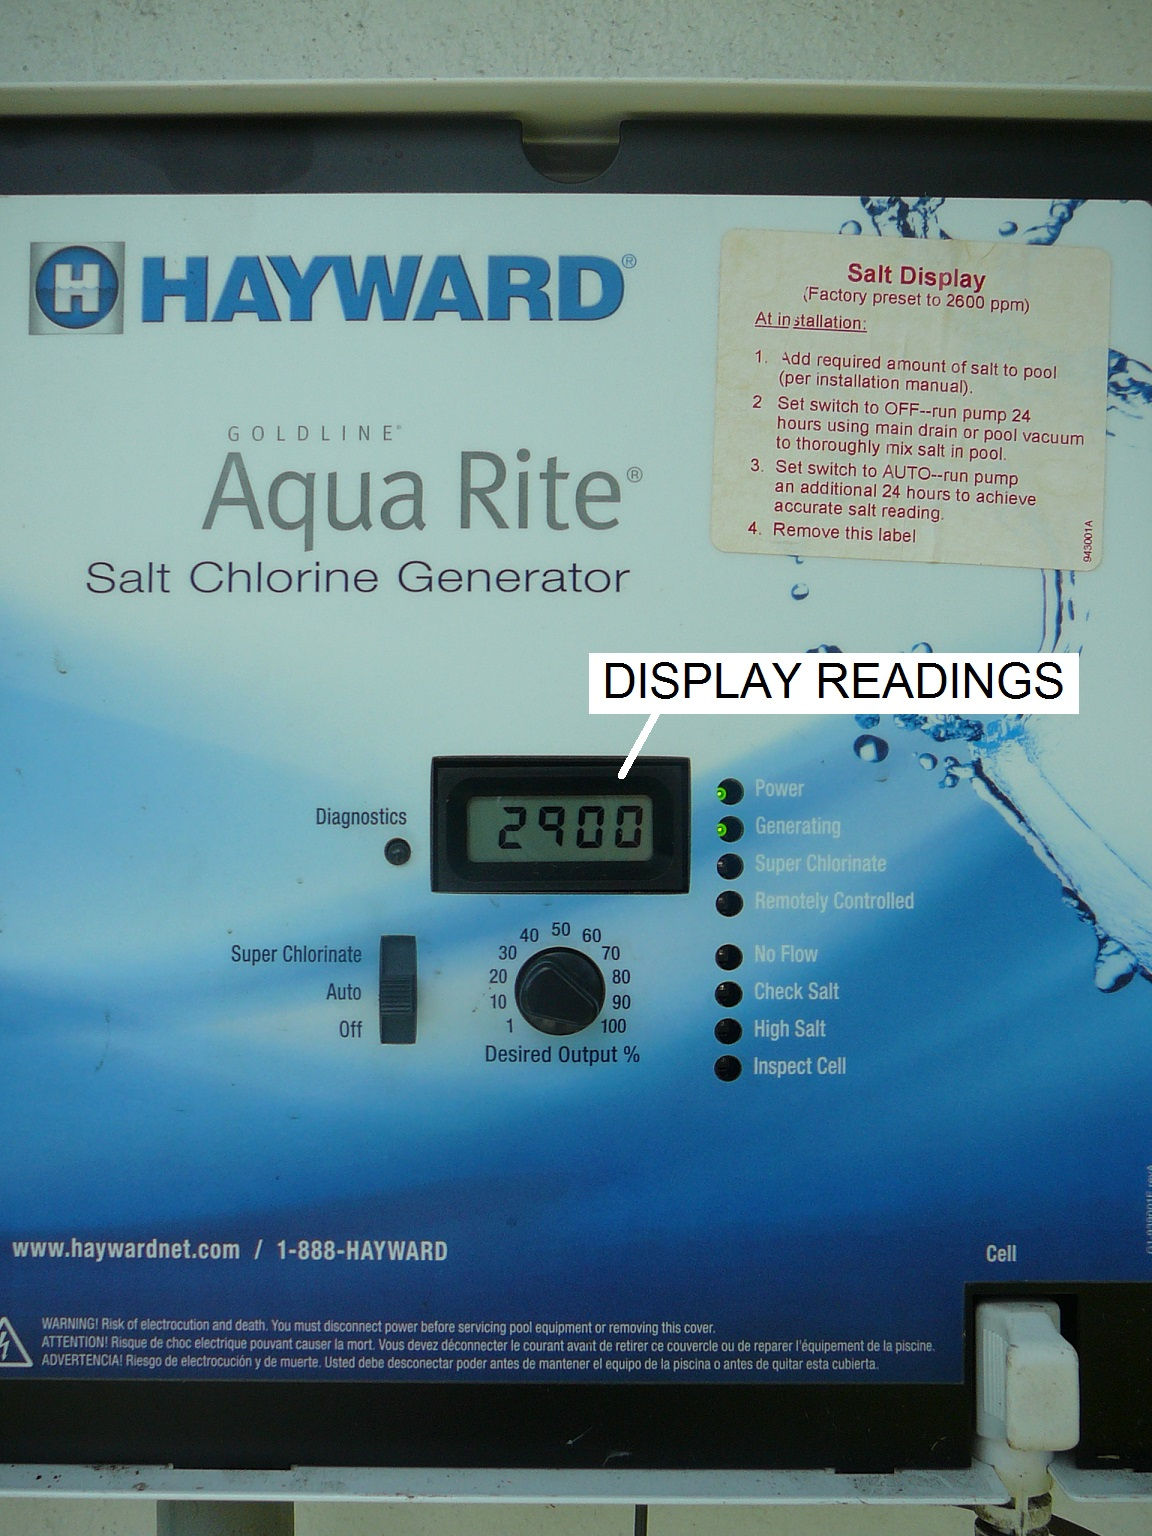 Hayward Aqua Rite Wiring Diagram Libraries Furthermore Pool Pump How To Read And Adjust The Scg Operational Valuesthis Guide Describes Display Readings On A Salt Chlorine Generator